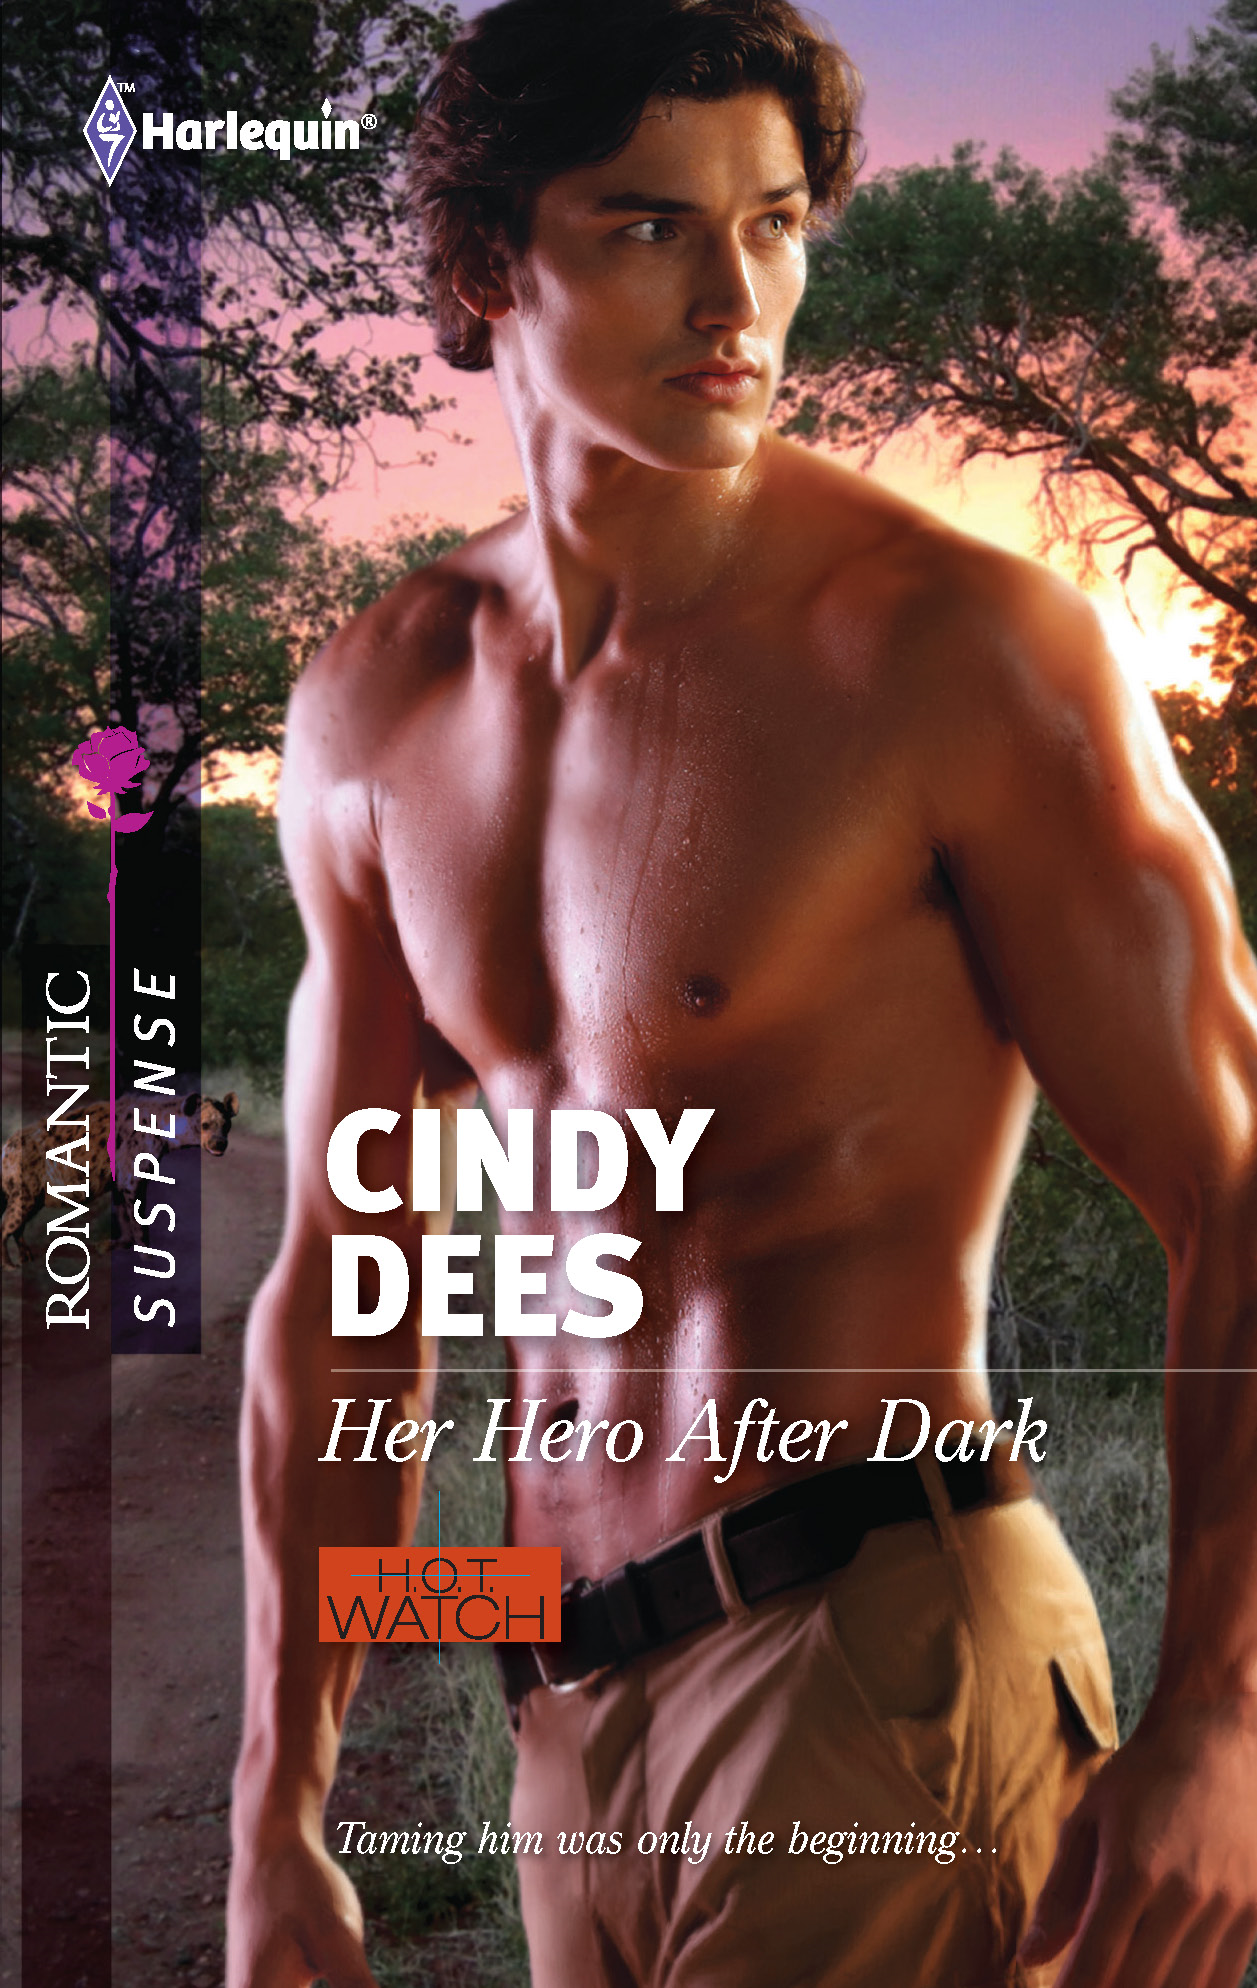 Her Hero After Dark By: Cindy Dees